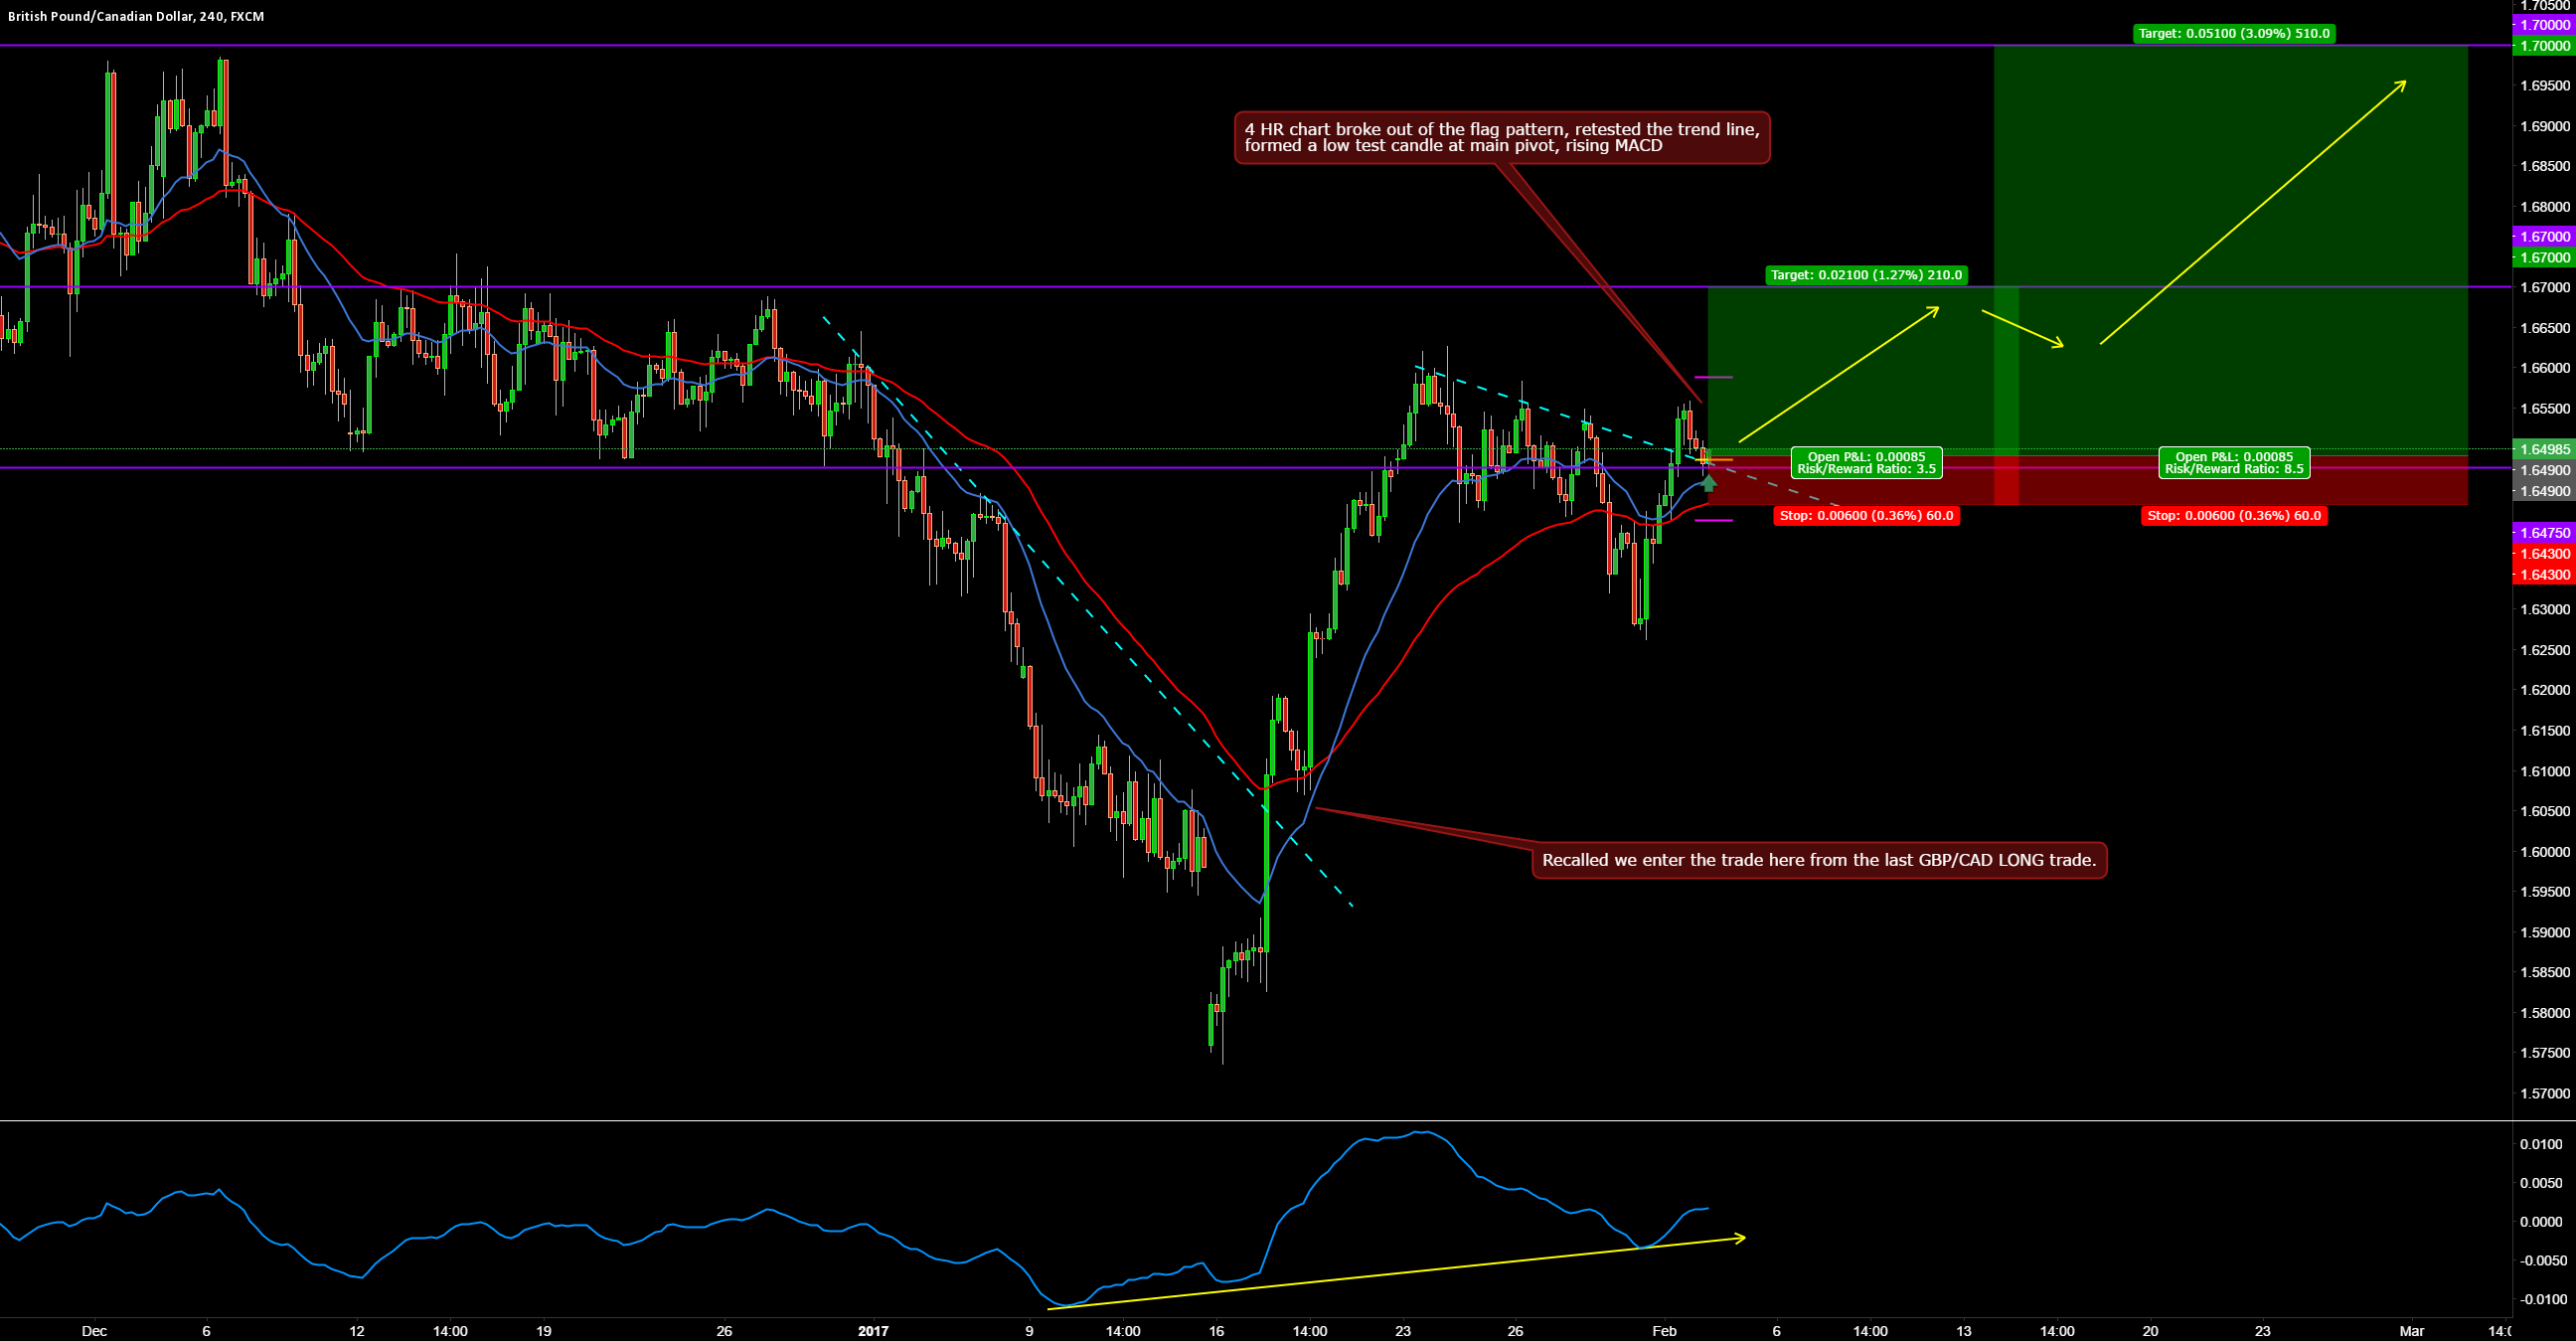 GBPCAD LONG 4 HR BREAK AND RETEST TRADE